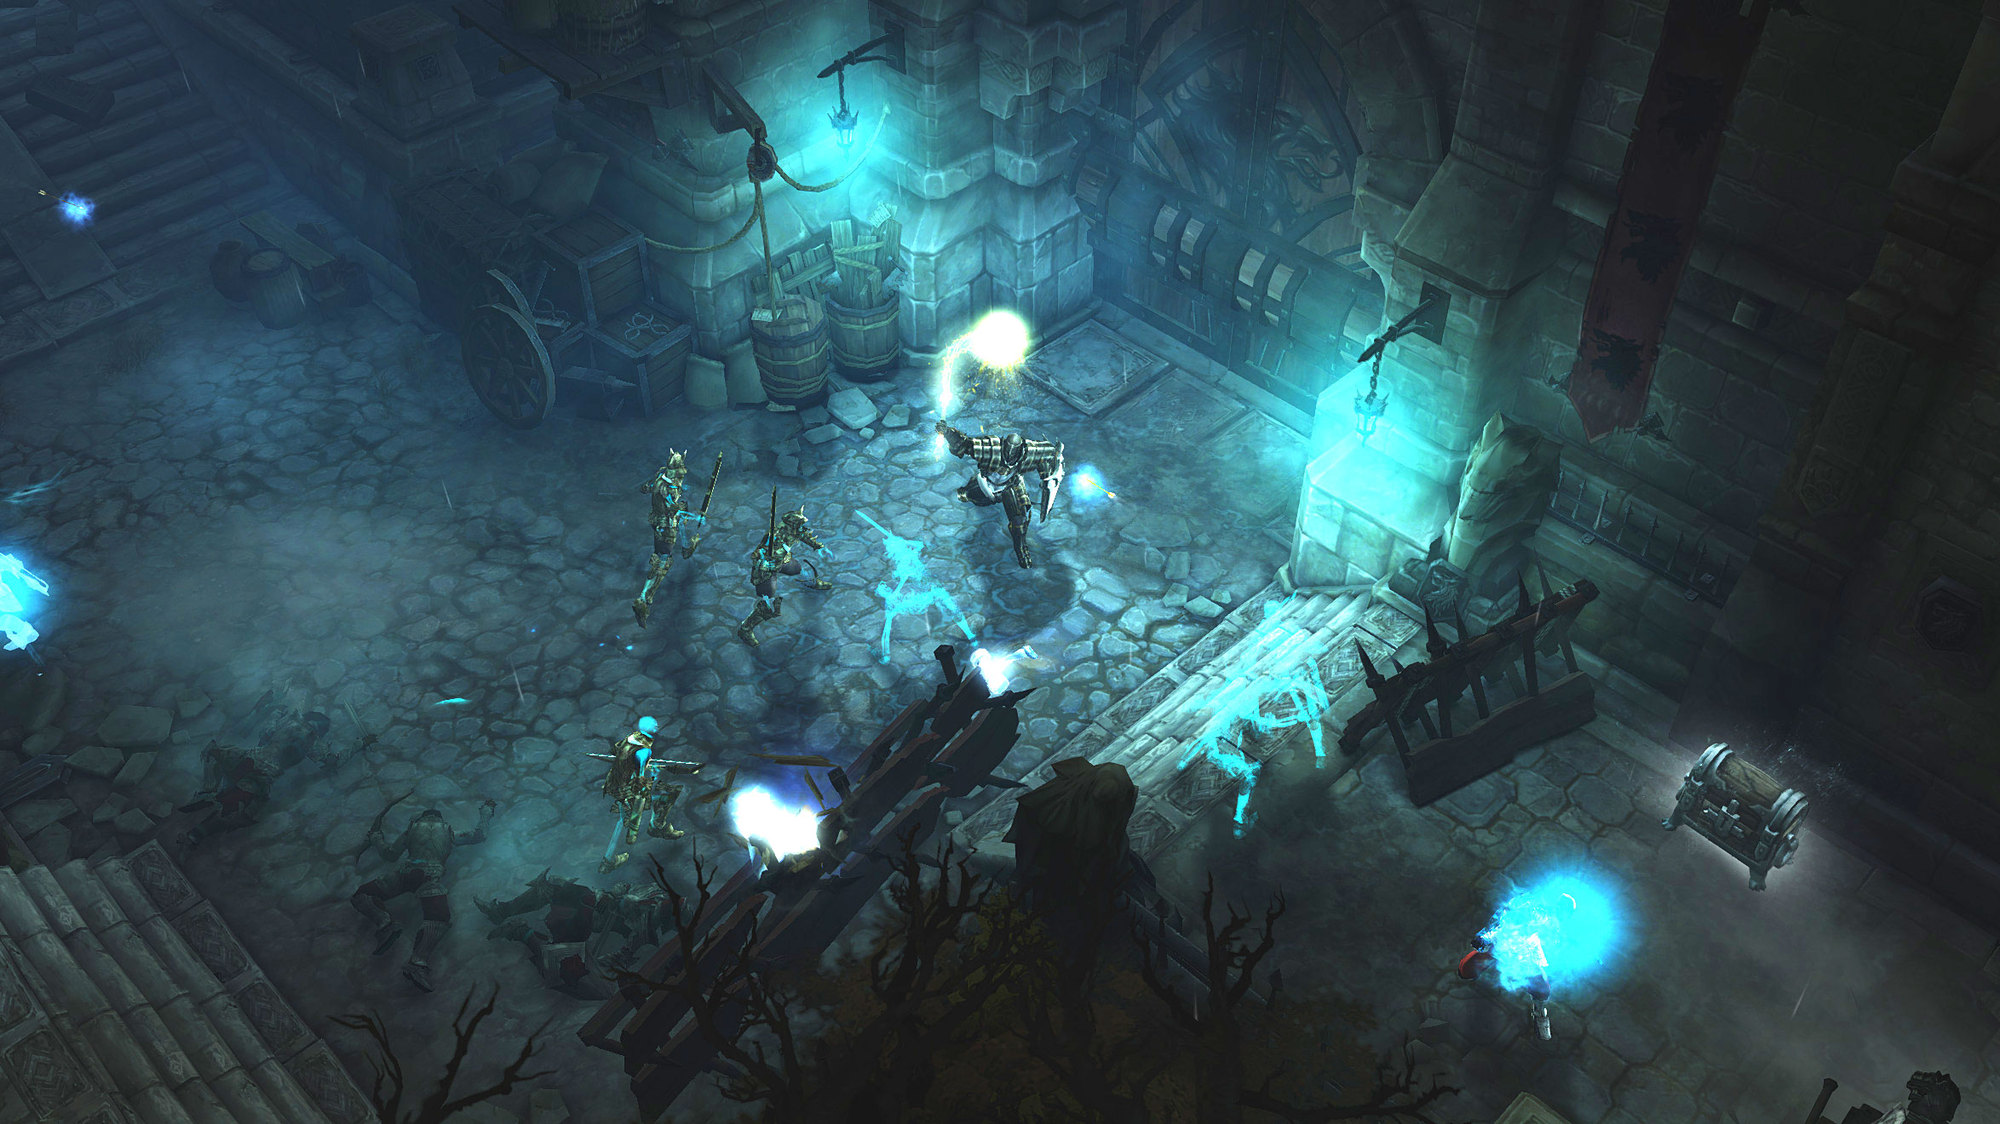 Gallery of From Starcraft to Age of Empires: When